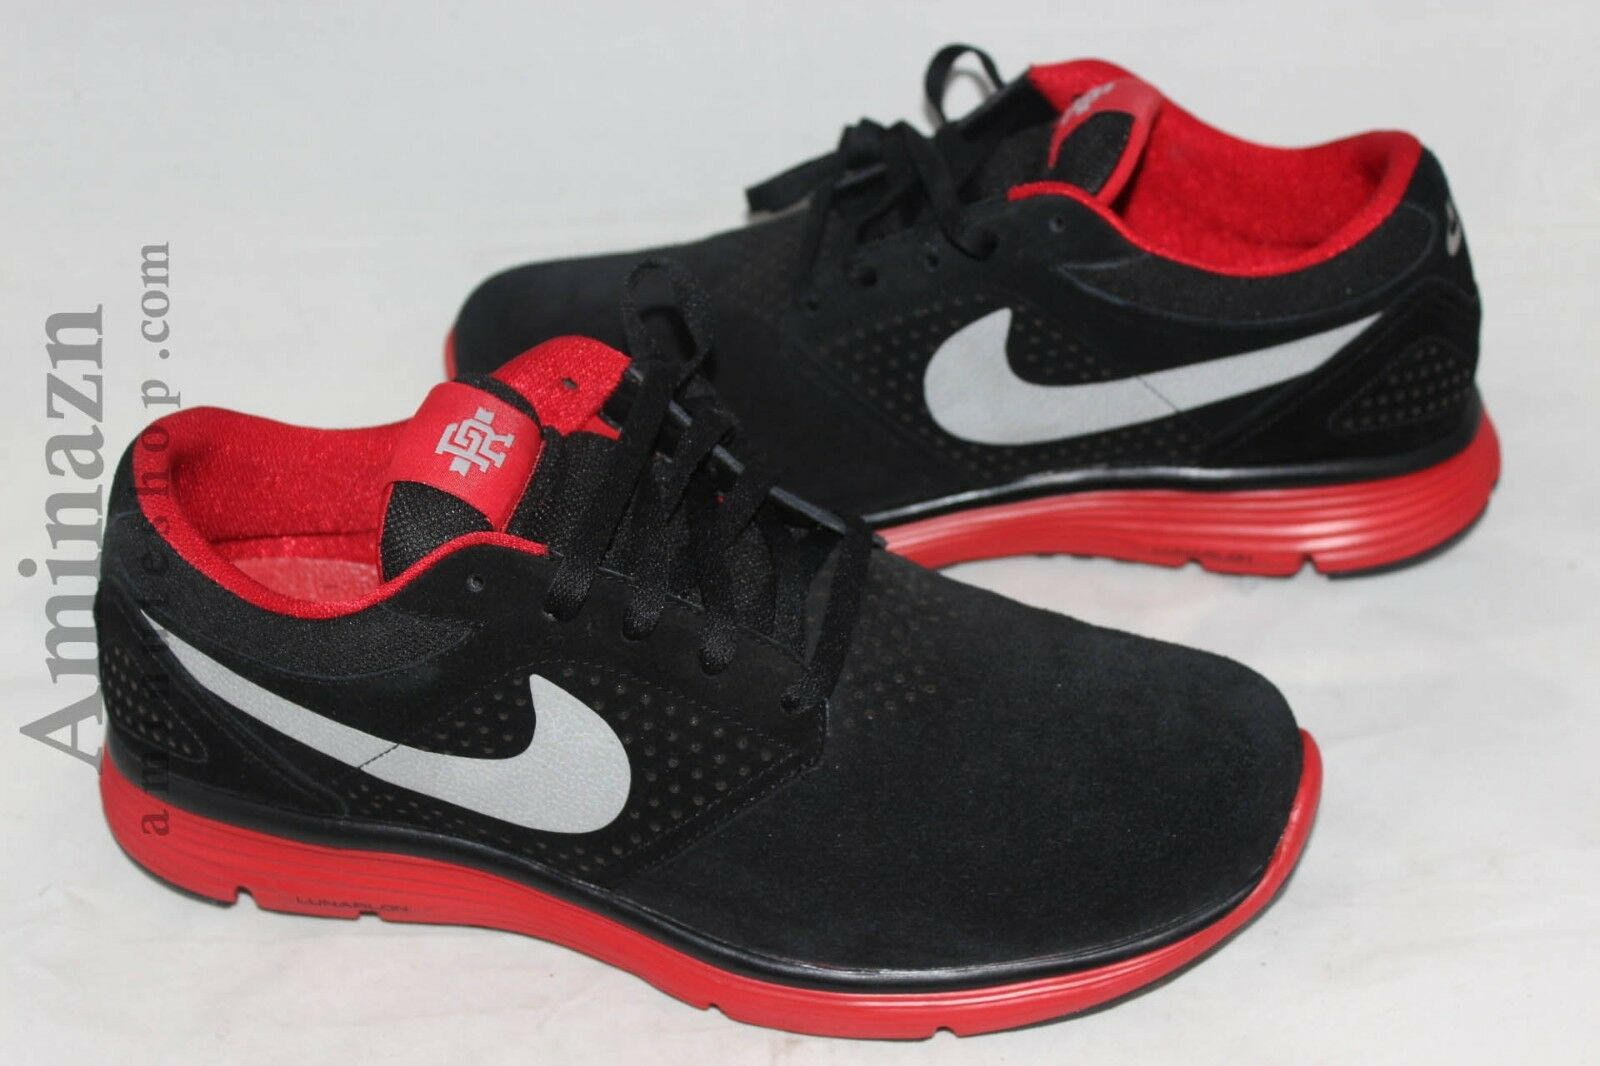 NEW NIKE P ROD V UNRELEASED MODEL SAMPLE LUNAR ROD black red j rod promo SZ 12